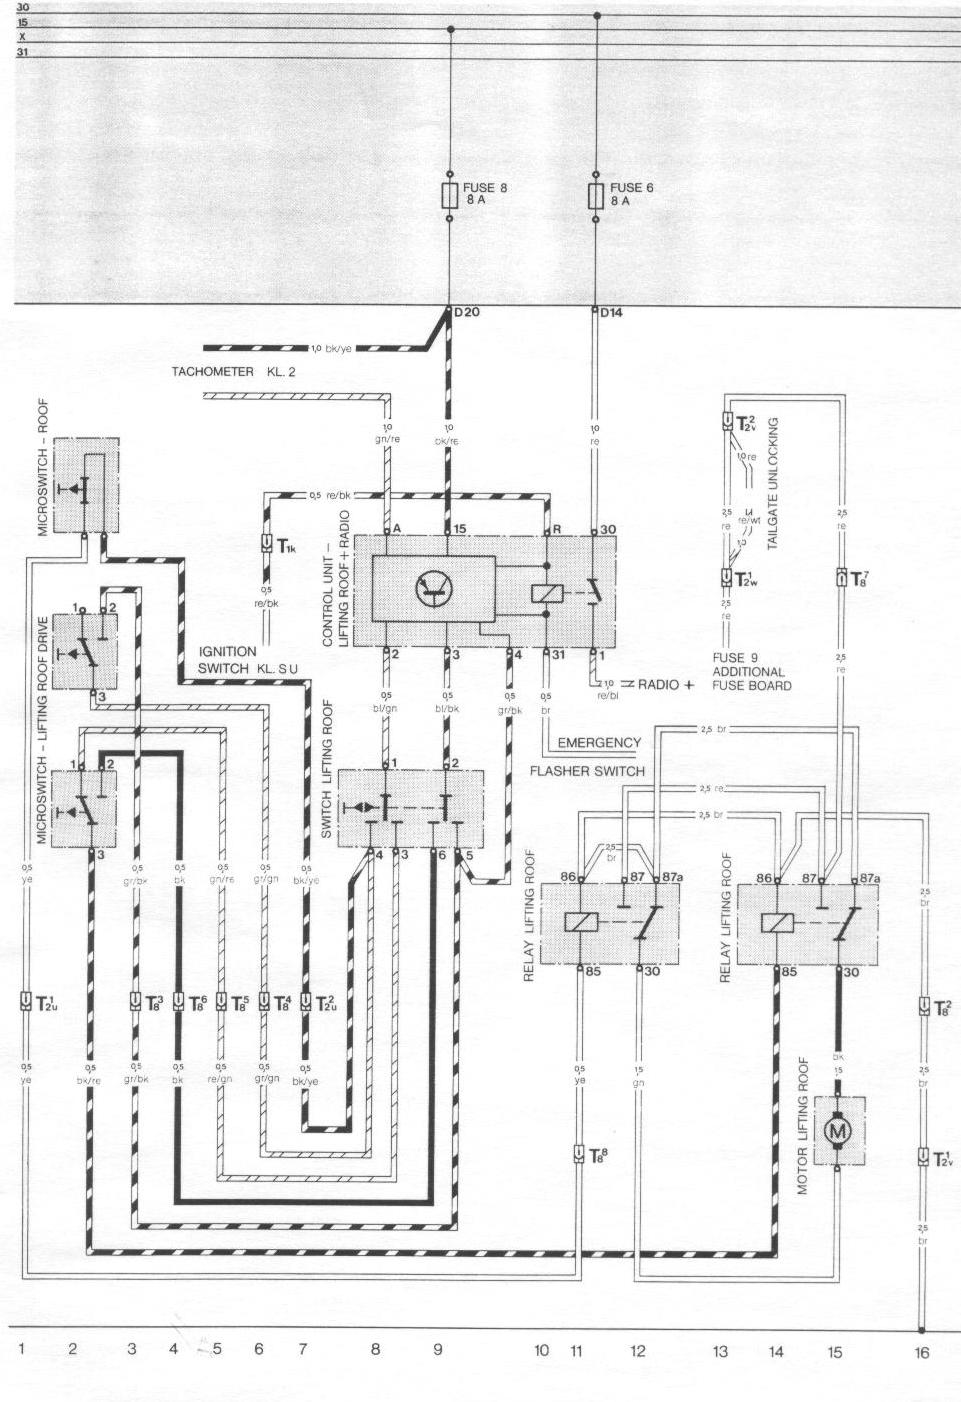 944_84_sunroof porsche 944 wiring diagram porsche 944 sunroof wiring diagram 1986 porsche 944 fuse box diagram at crackthecode.co